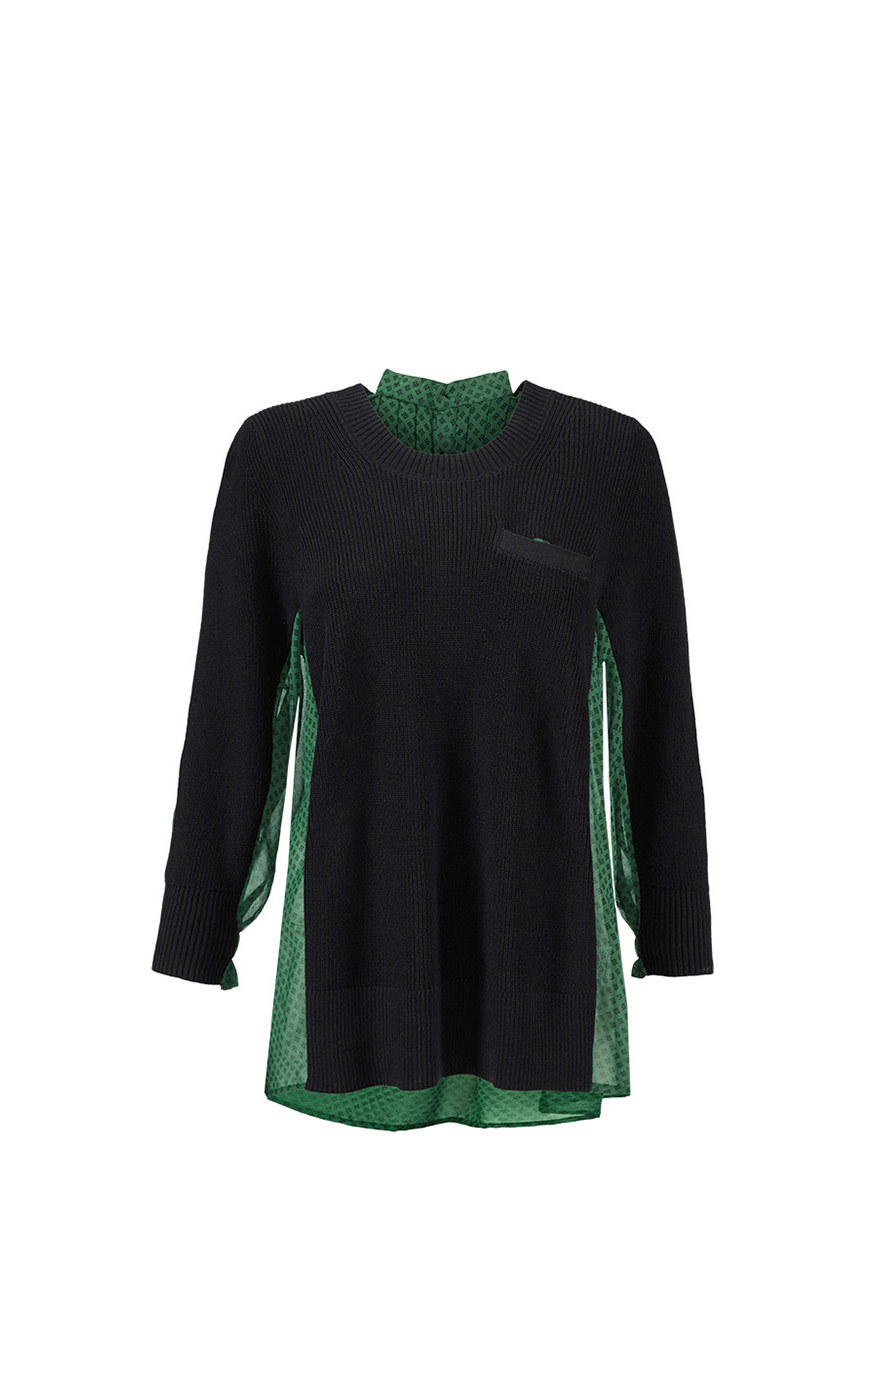 cabi's Get-Together Sweater